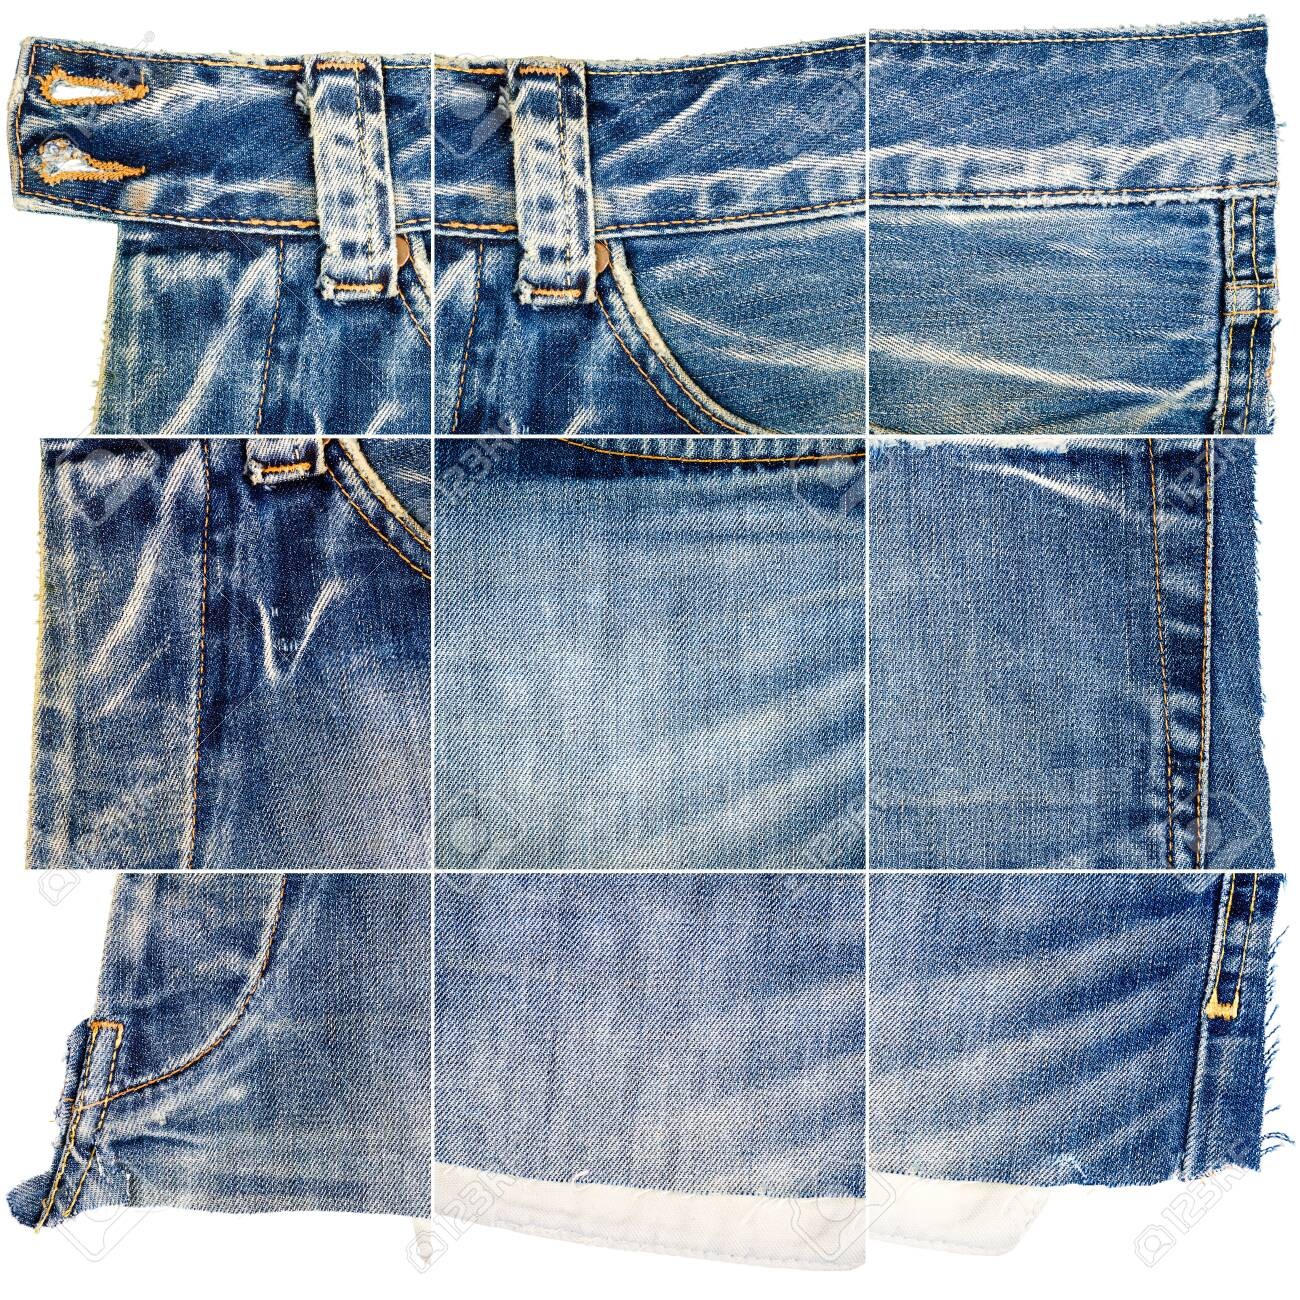 Collection of blue jeans fabric textures isolated on white background. Rough uneven edges. Composite image of jeans with pocket - 120789257